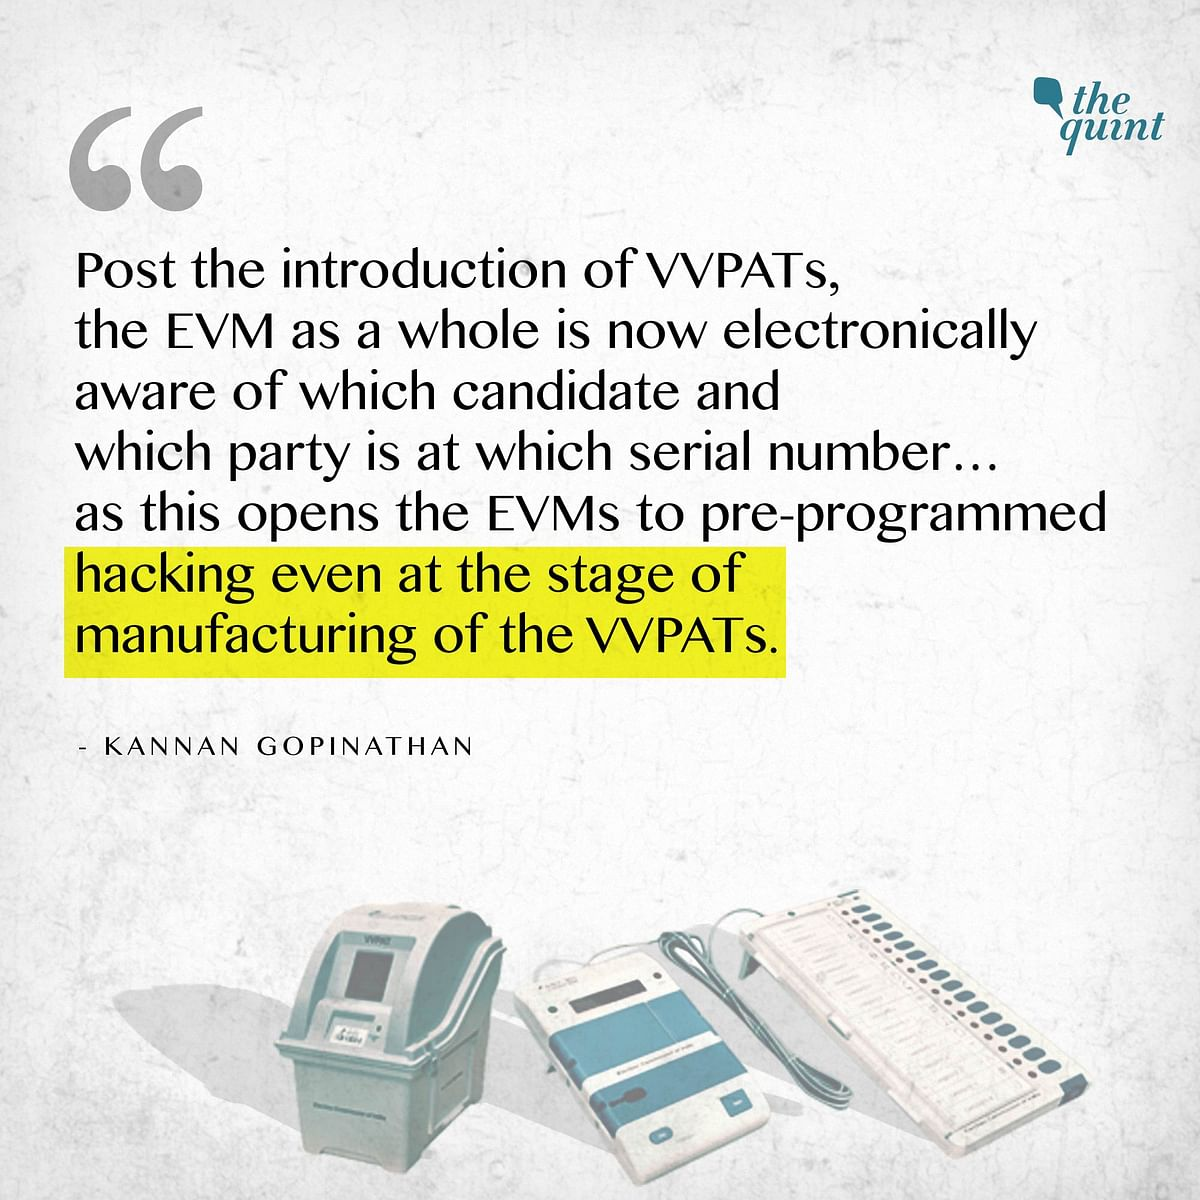 EC Probes How EVM-VVPAT Glitches Are Prone to Manipulation